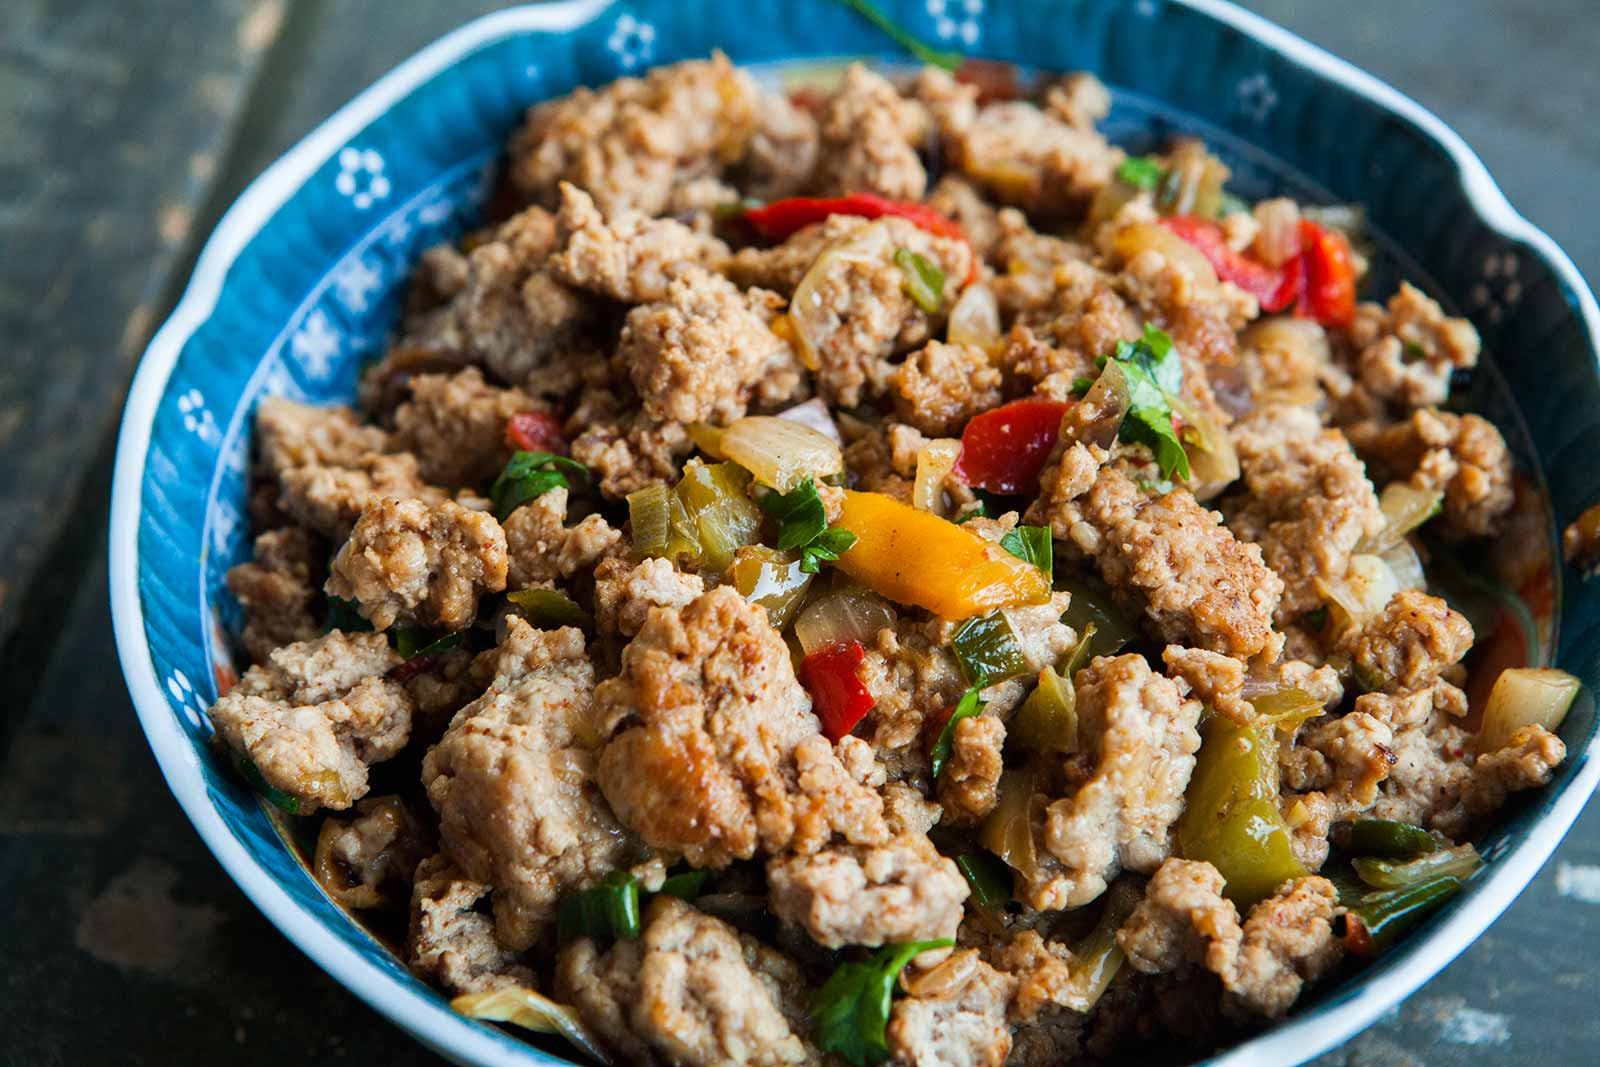 Healthy Recipes With Ground Turkey Meat  Mom s Ground Turkey and Peppers 1 Pot Meal